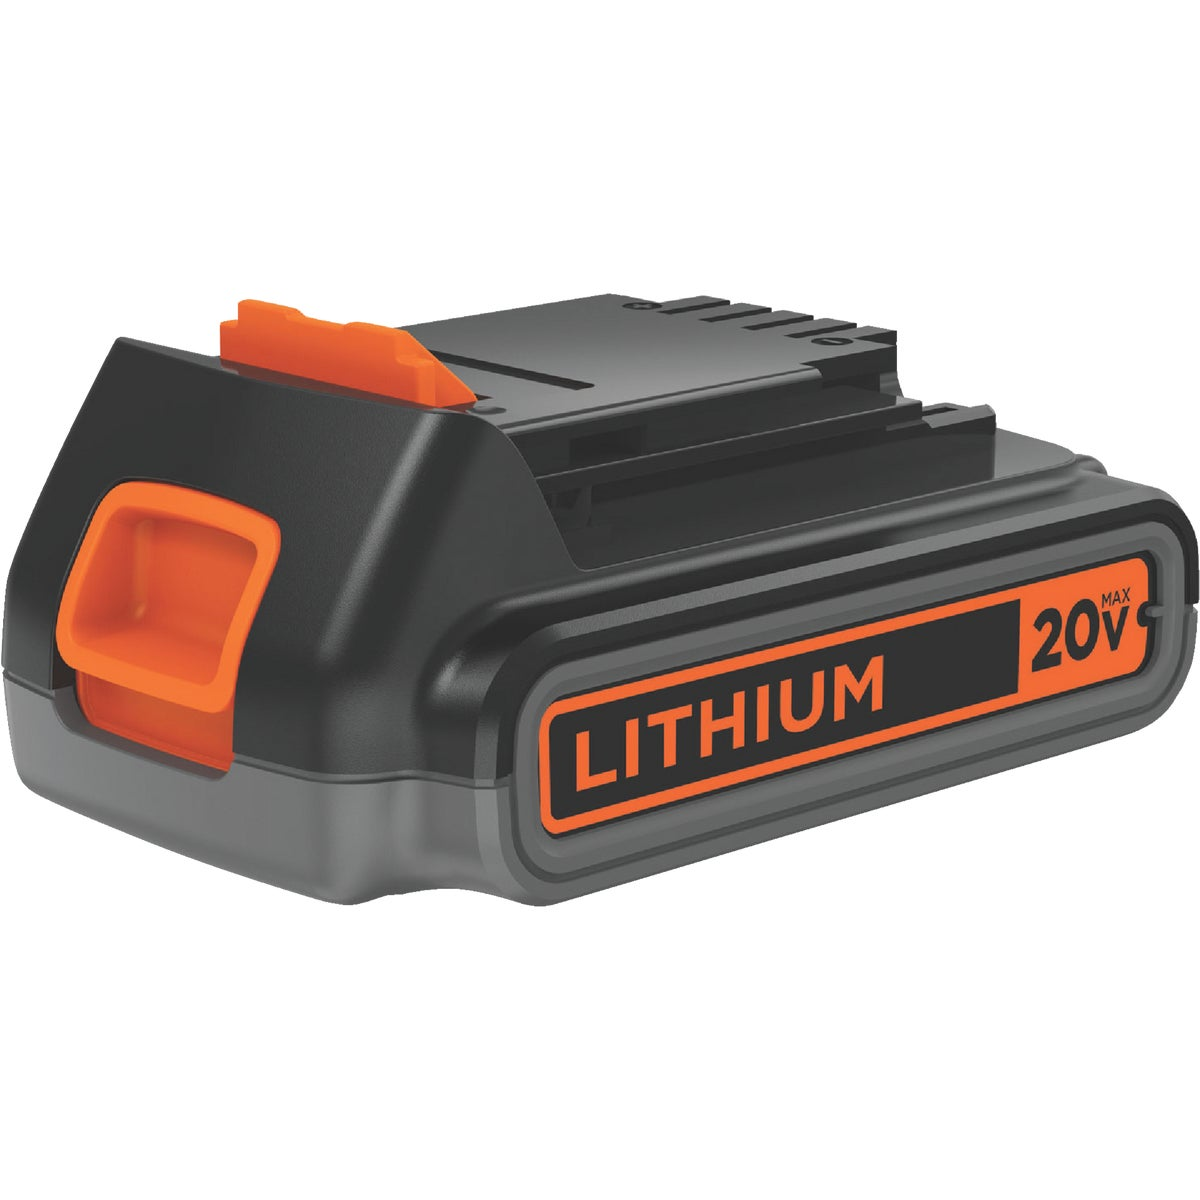 20V LITHIUM ION BATTERY - LBXR20 by Black & Decker